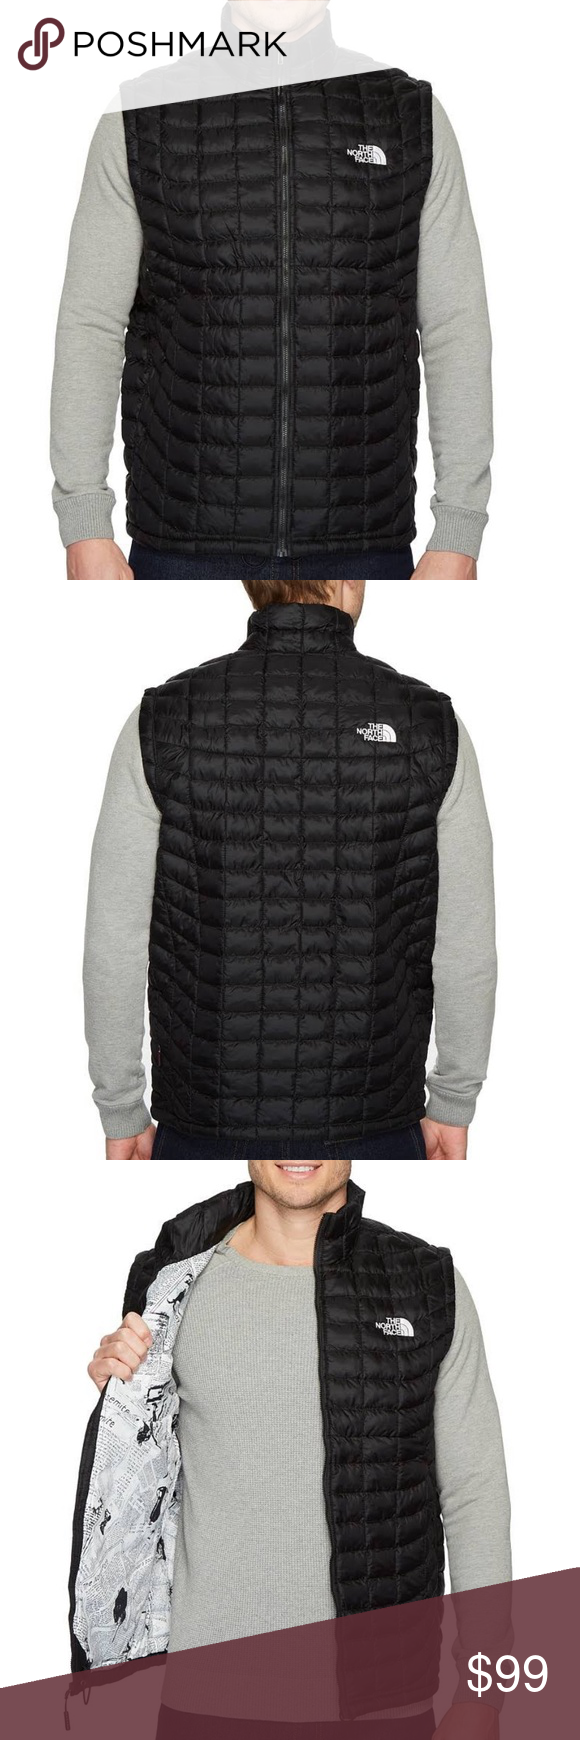 82b2303d4 The North Face Men's Thermoball Vest TNF Black / TNF White Catalogue ...